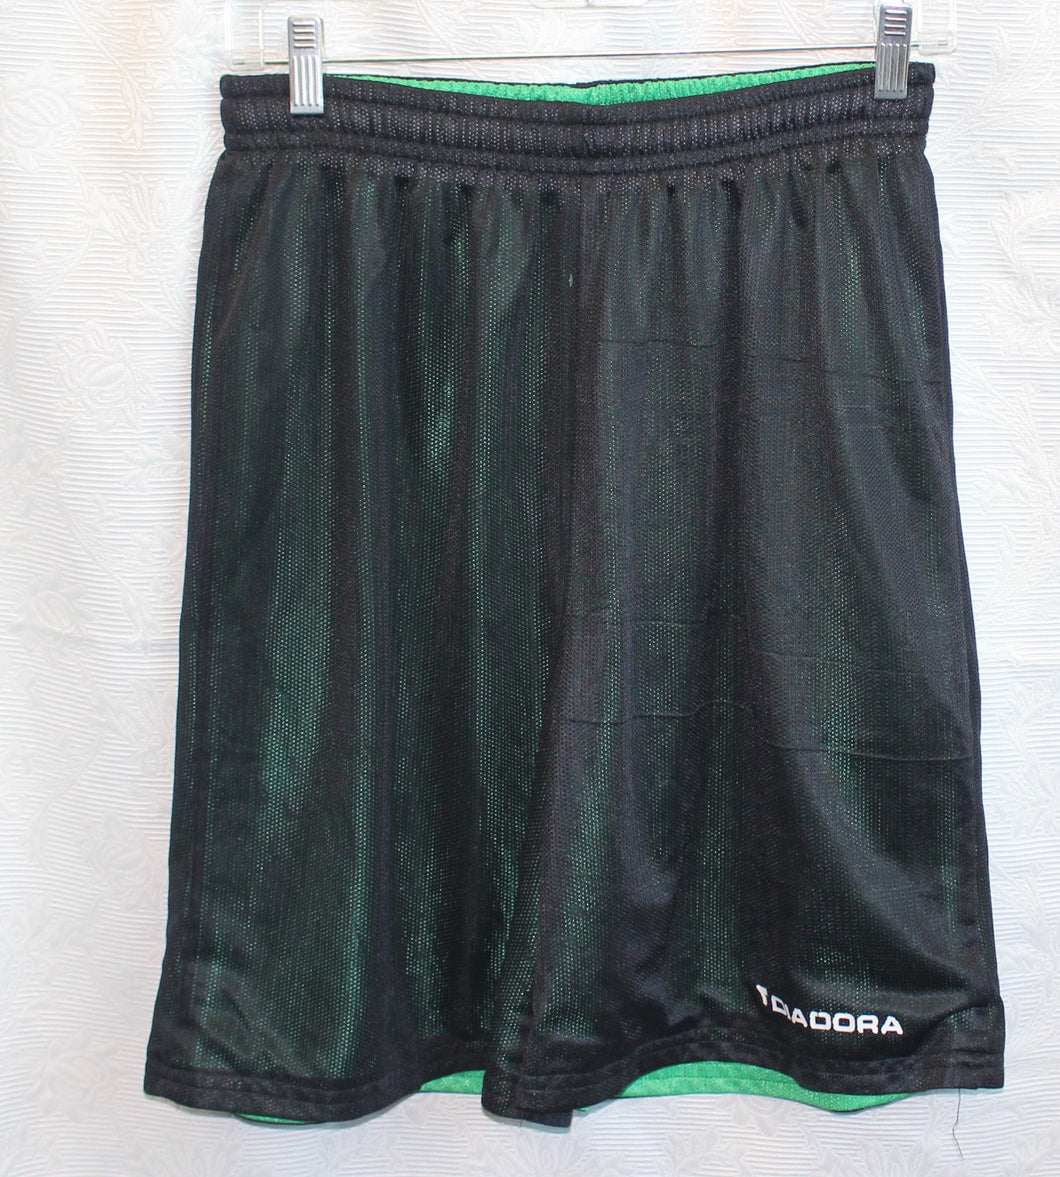 Men's Swim Trunks                             L                                                       2/17B